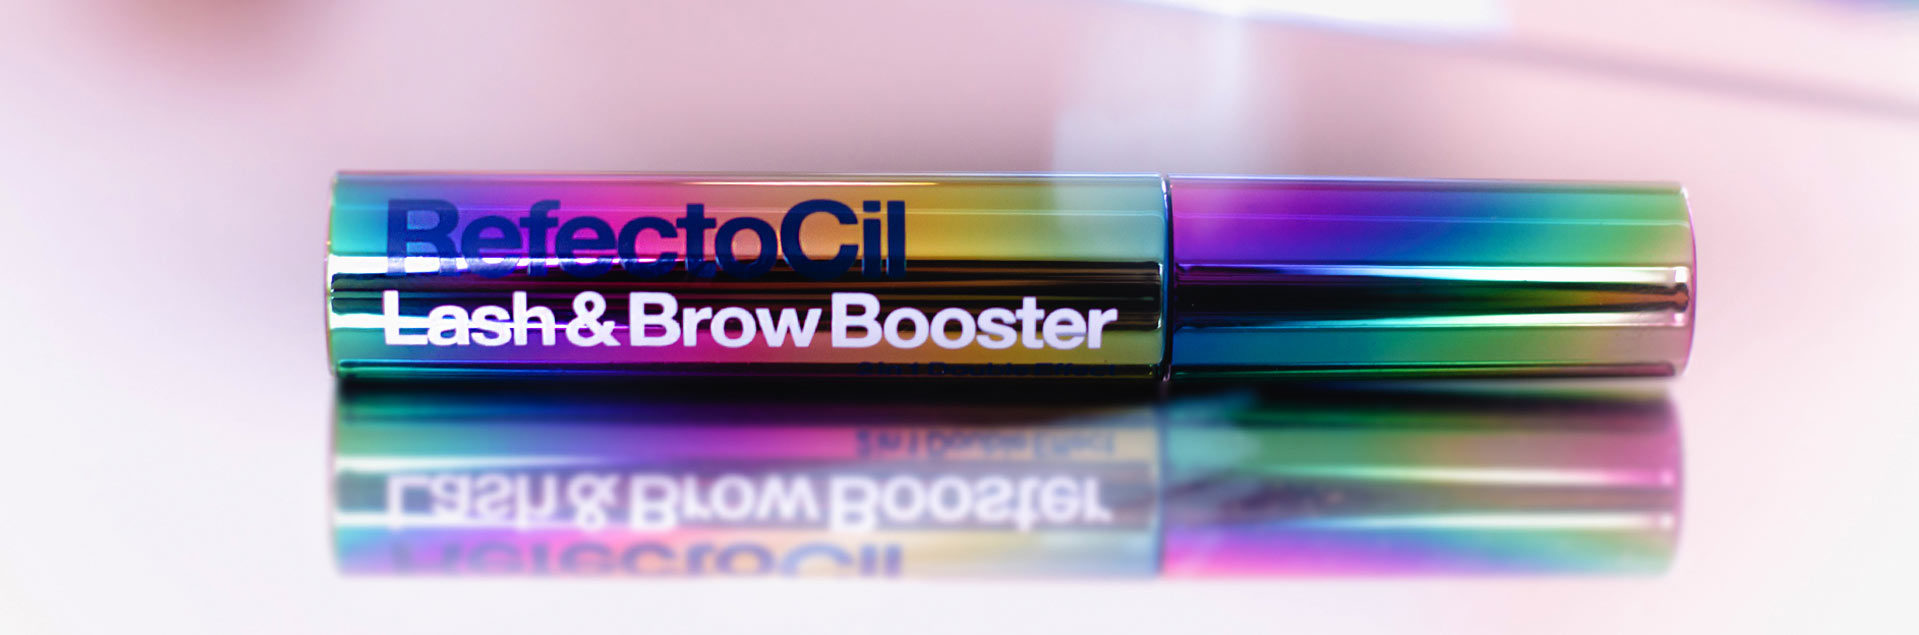 RefectoCil Lash & Brow Booster - serum na porost brwi i rzęs